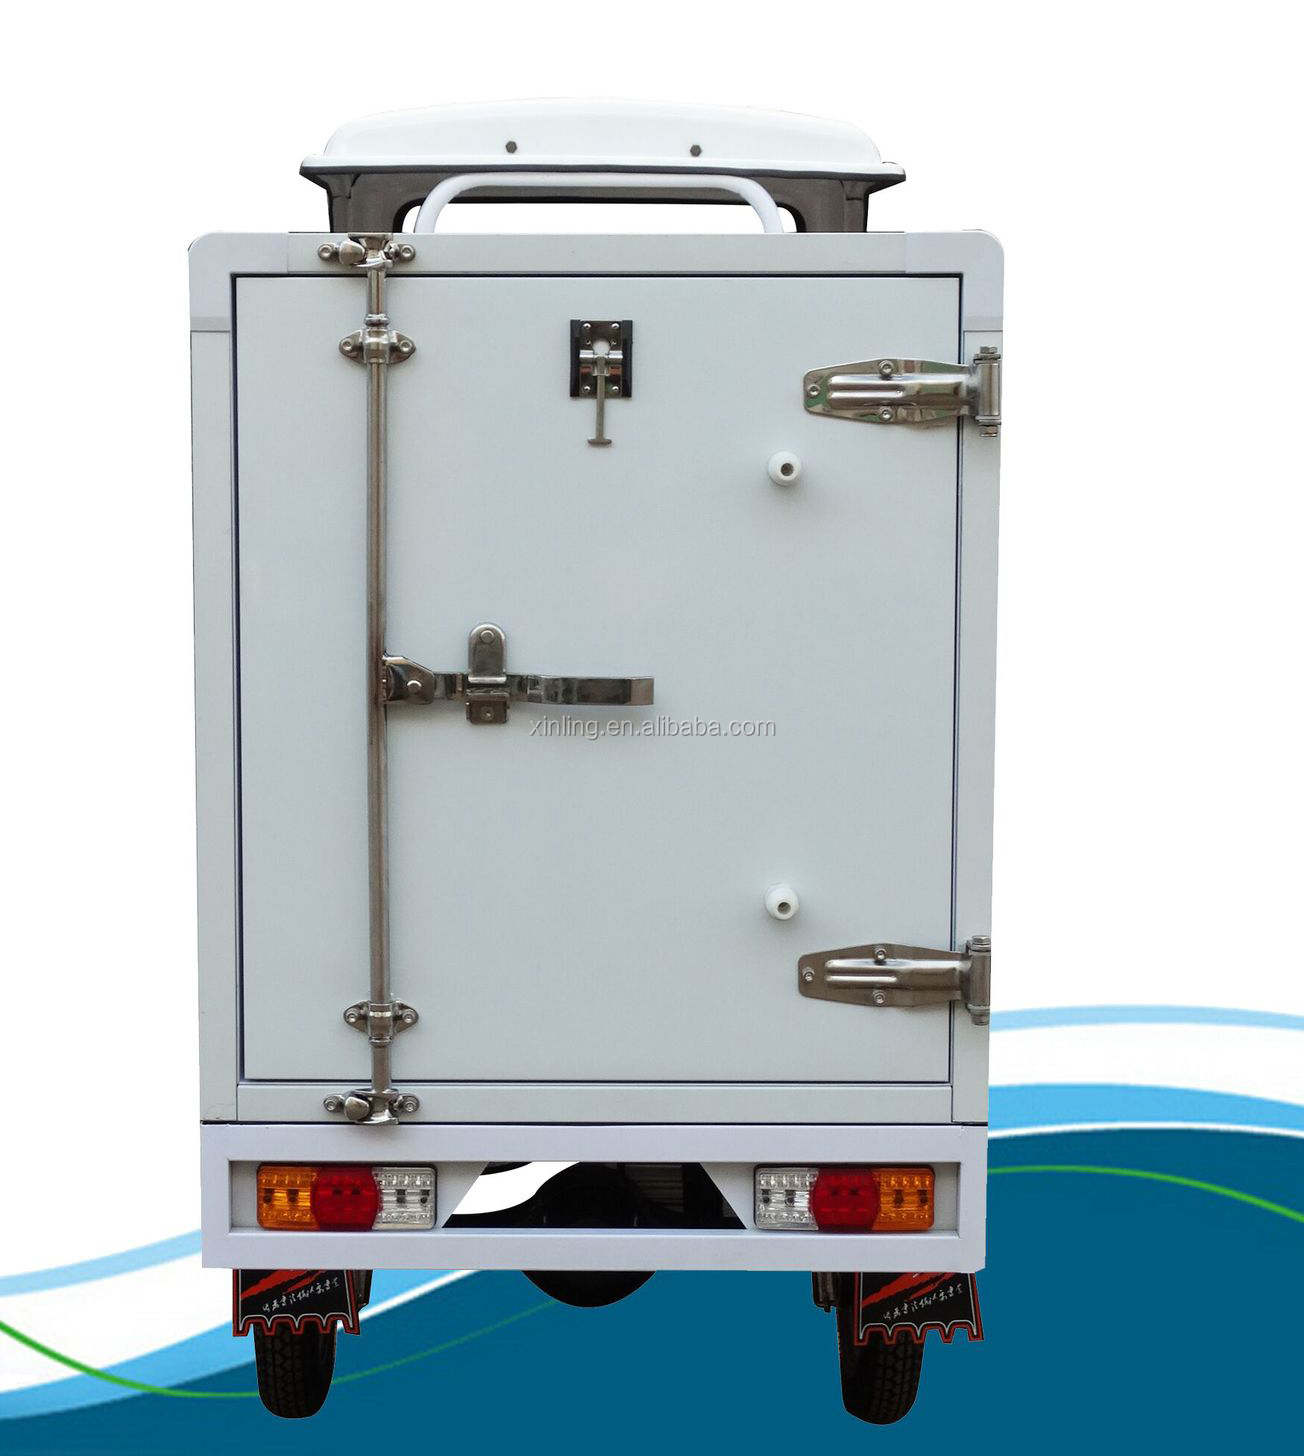 new arrival electric Cargo Freezing Refrigerate with Electric Refrigerator Cargo Box Ice cream refrigerated tricycle